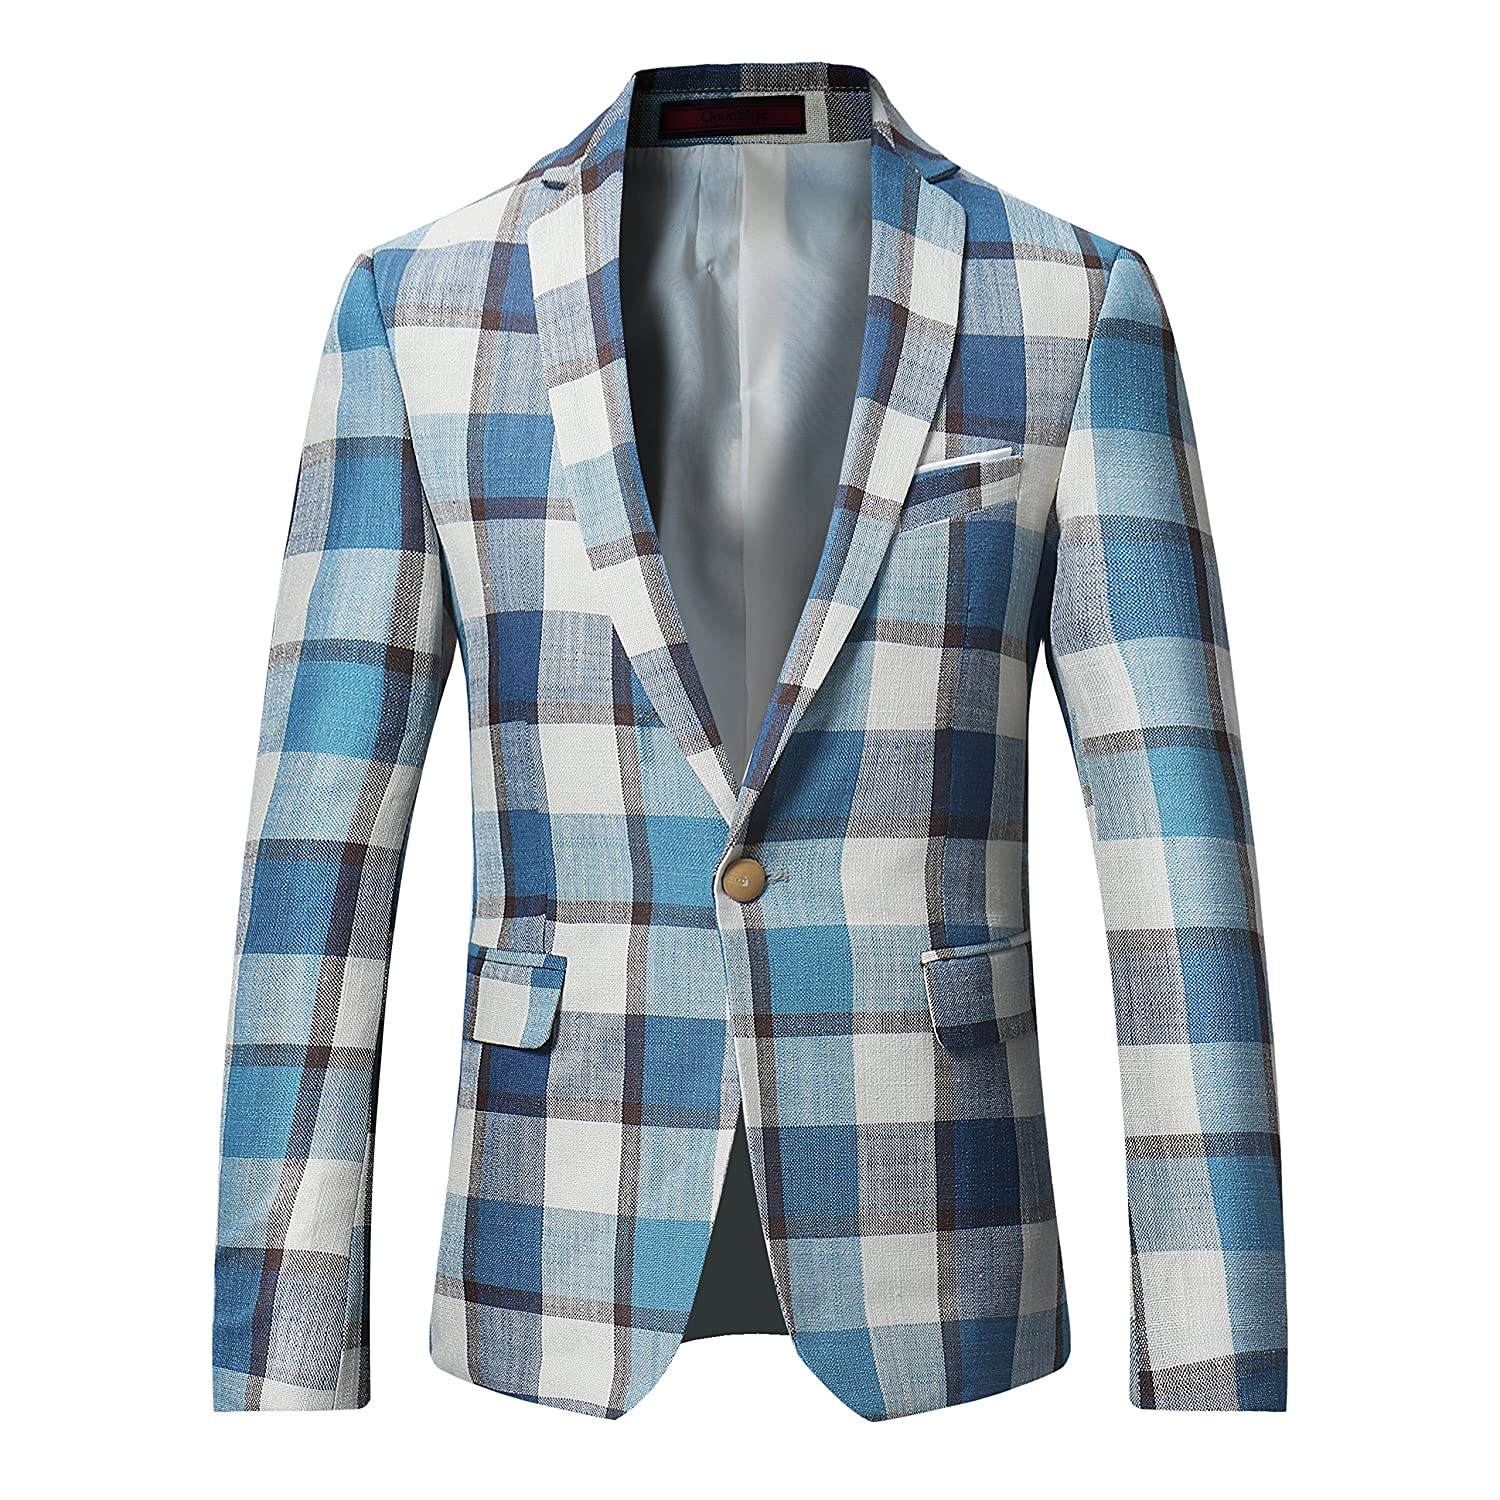 Cloudstyle Men's Dinner Jacket One Button Patterned Party Blazer Plaid Sports Coat HKBlazer3